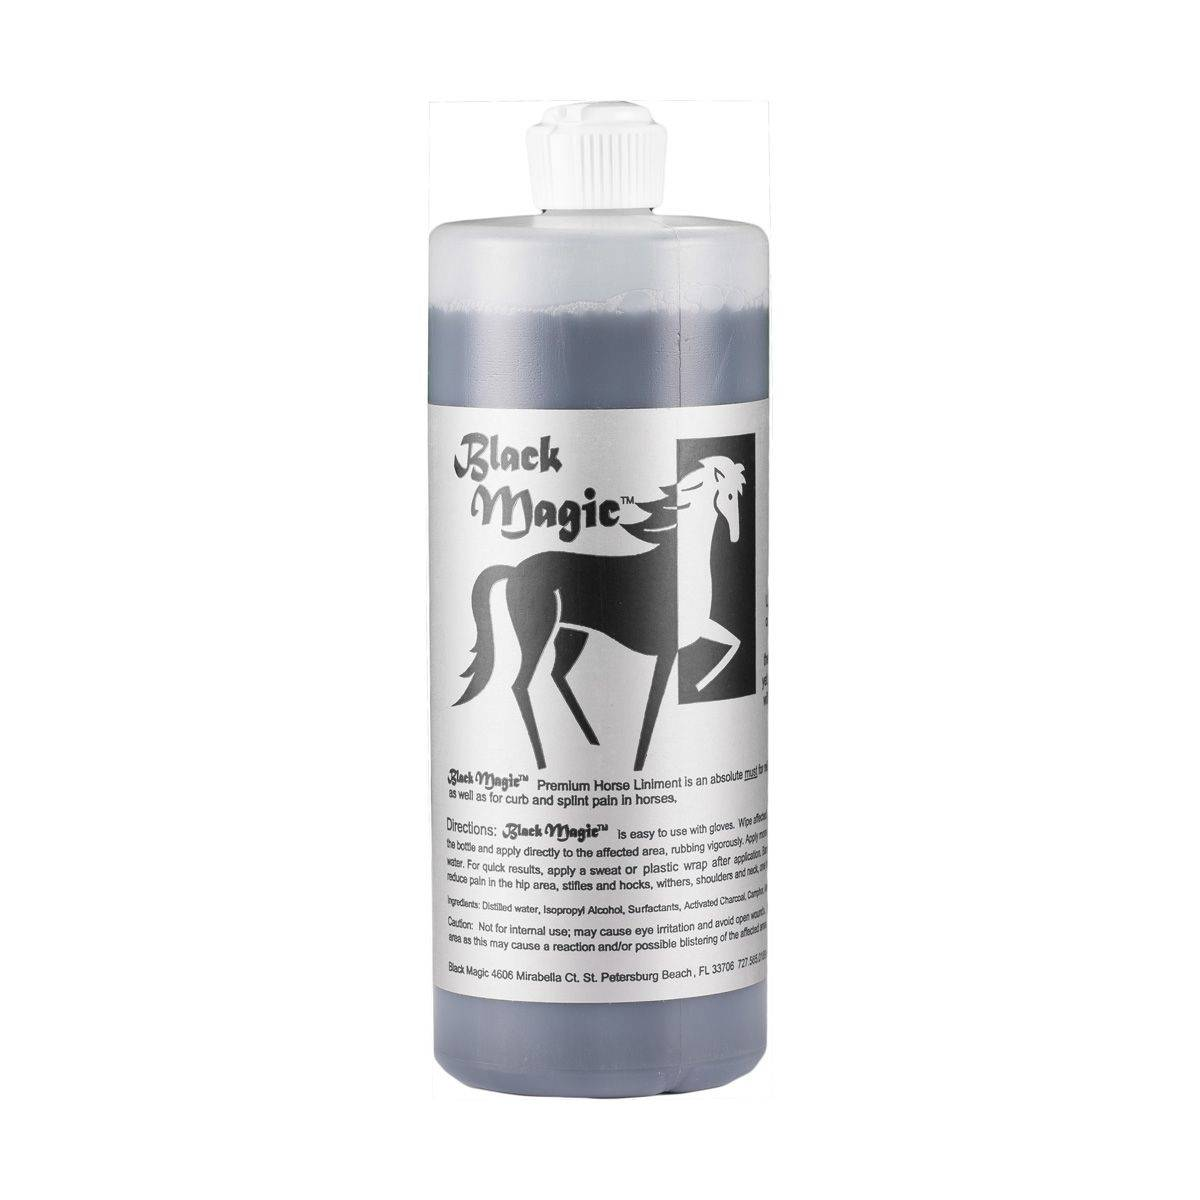 Black Magic Liniment